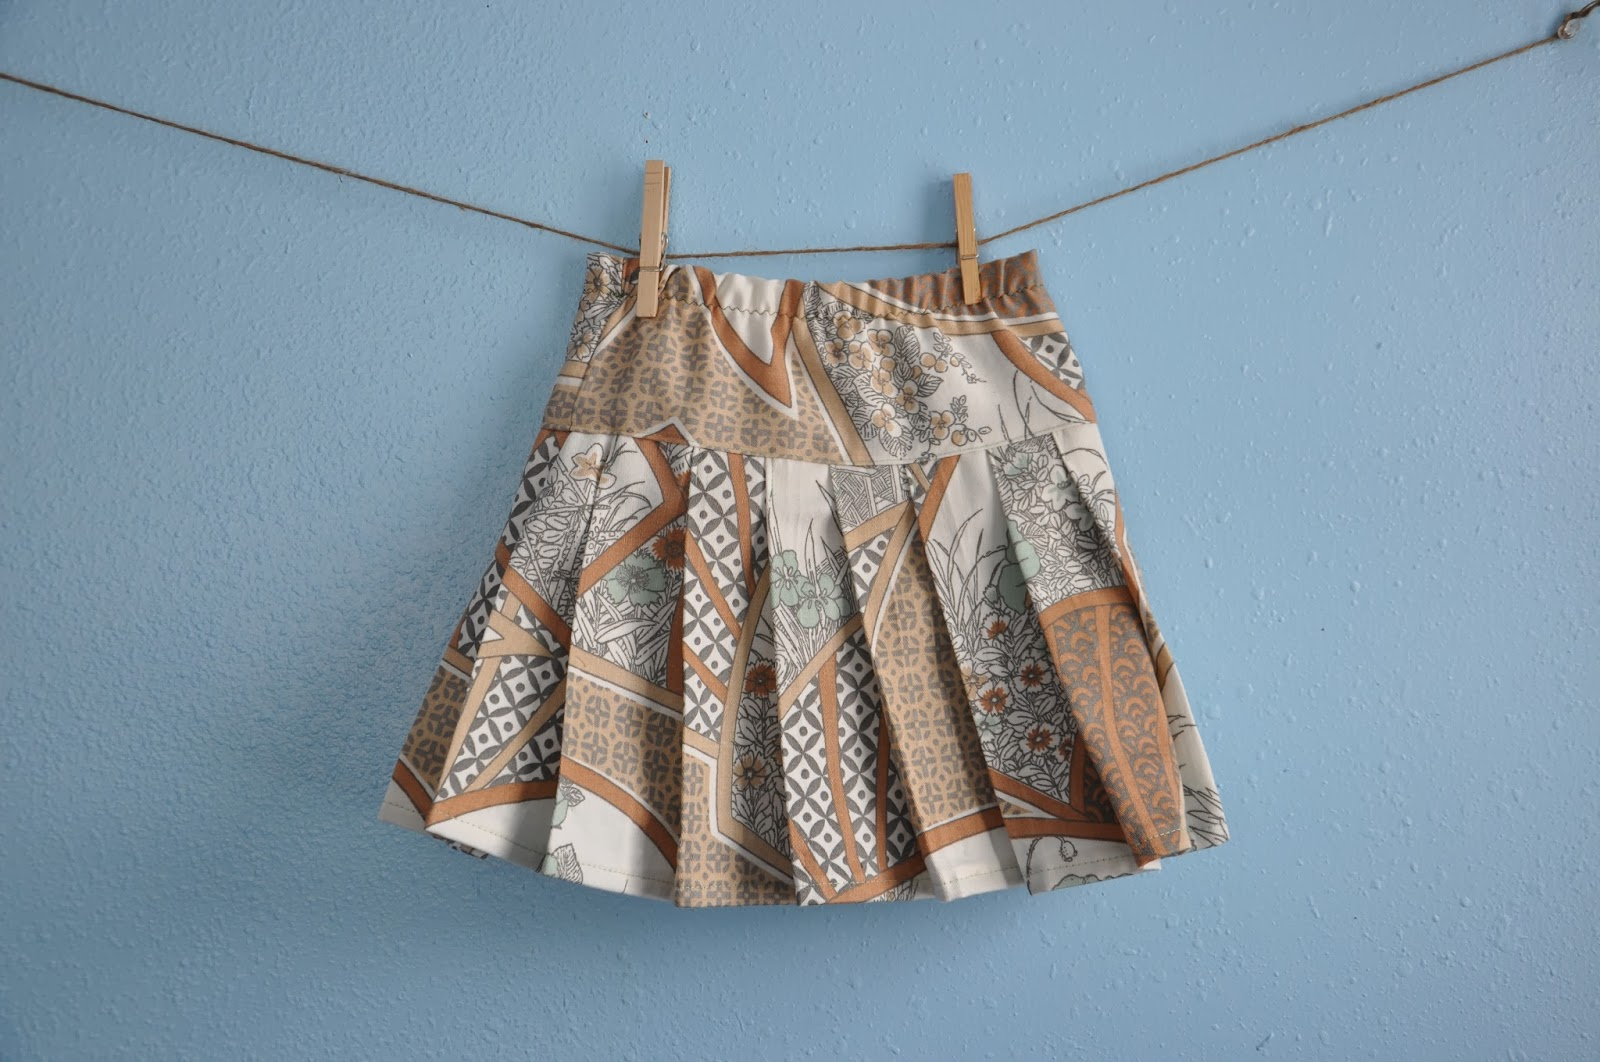 http://www.thelifeofacompulsivecrafter.blogspot.com/2014/02/the-betty-skirt-by-shaffer-sisters.html